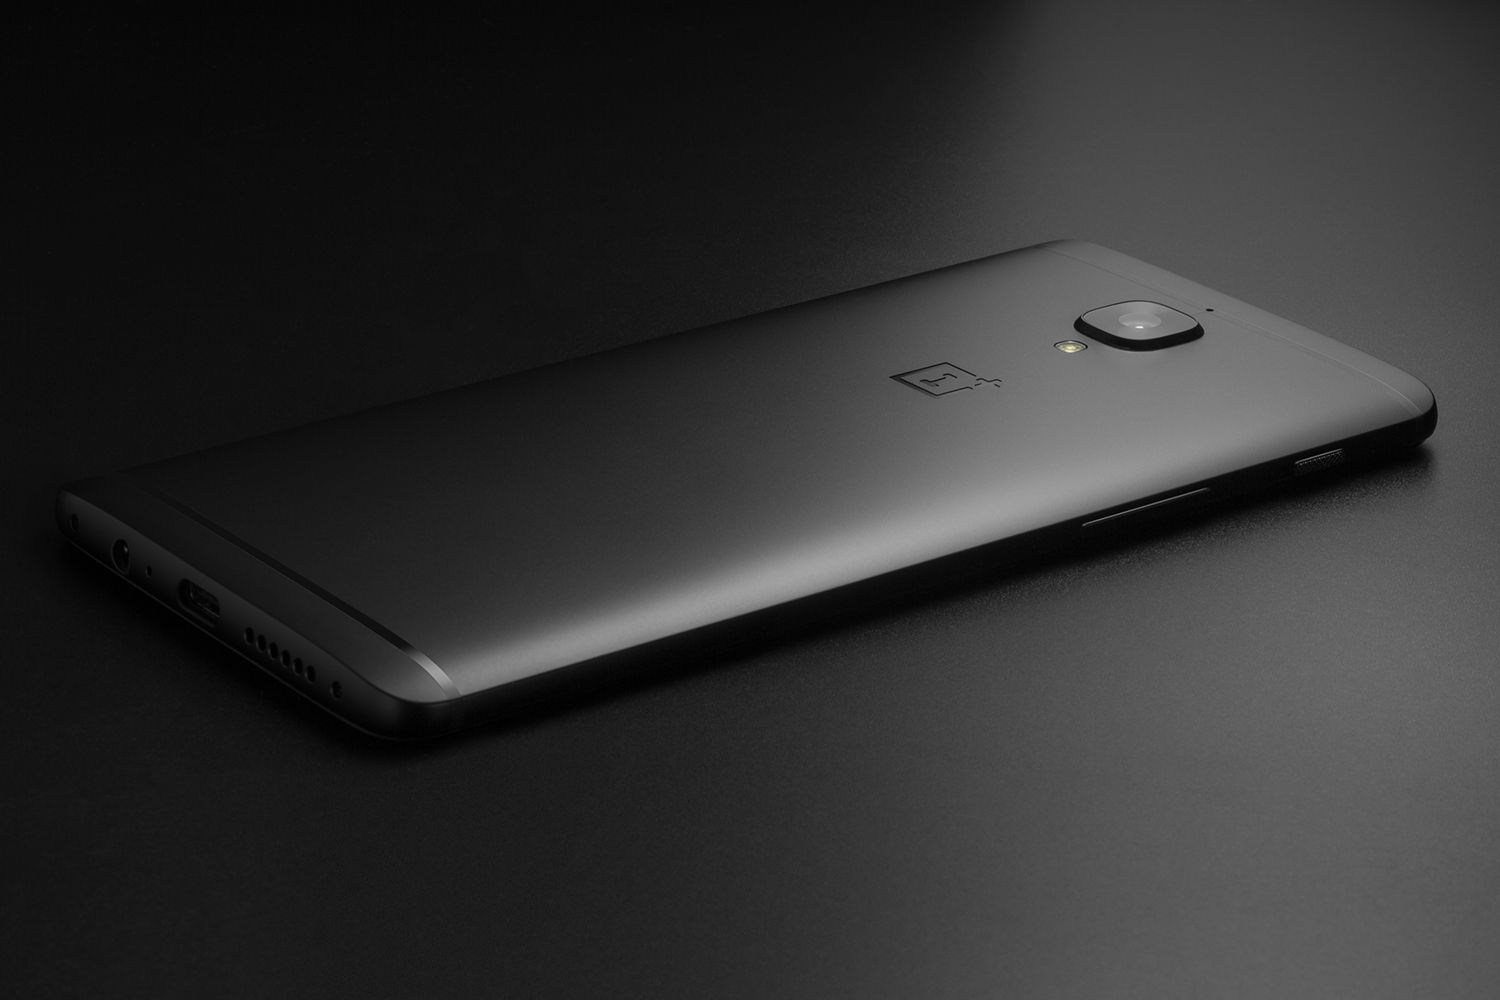 OnePlus-3T-Midnight-Black